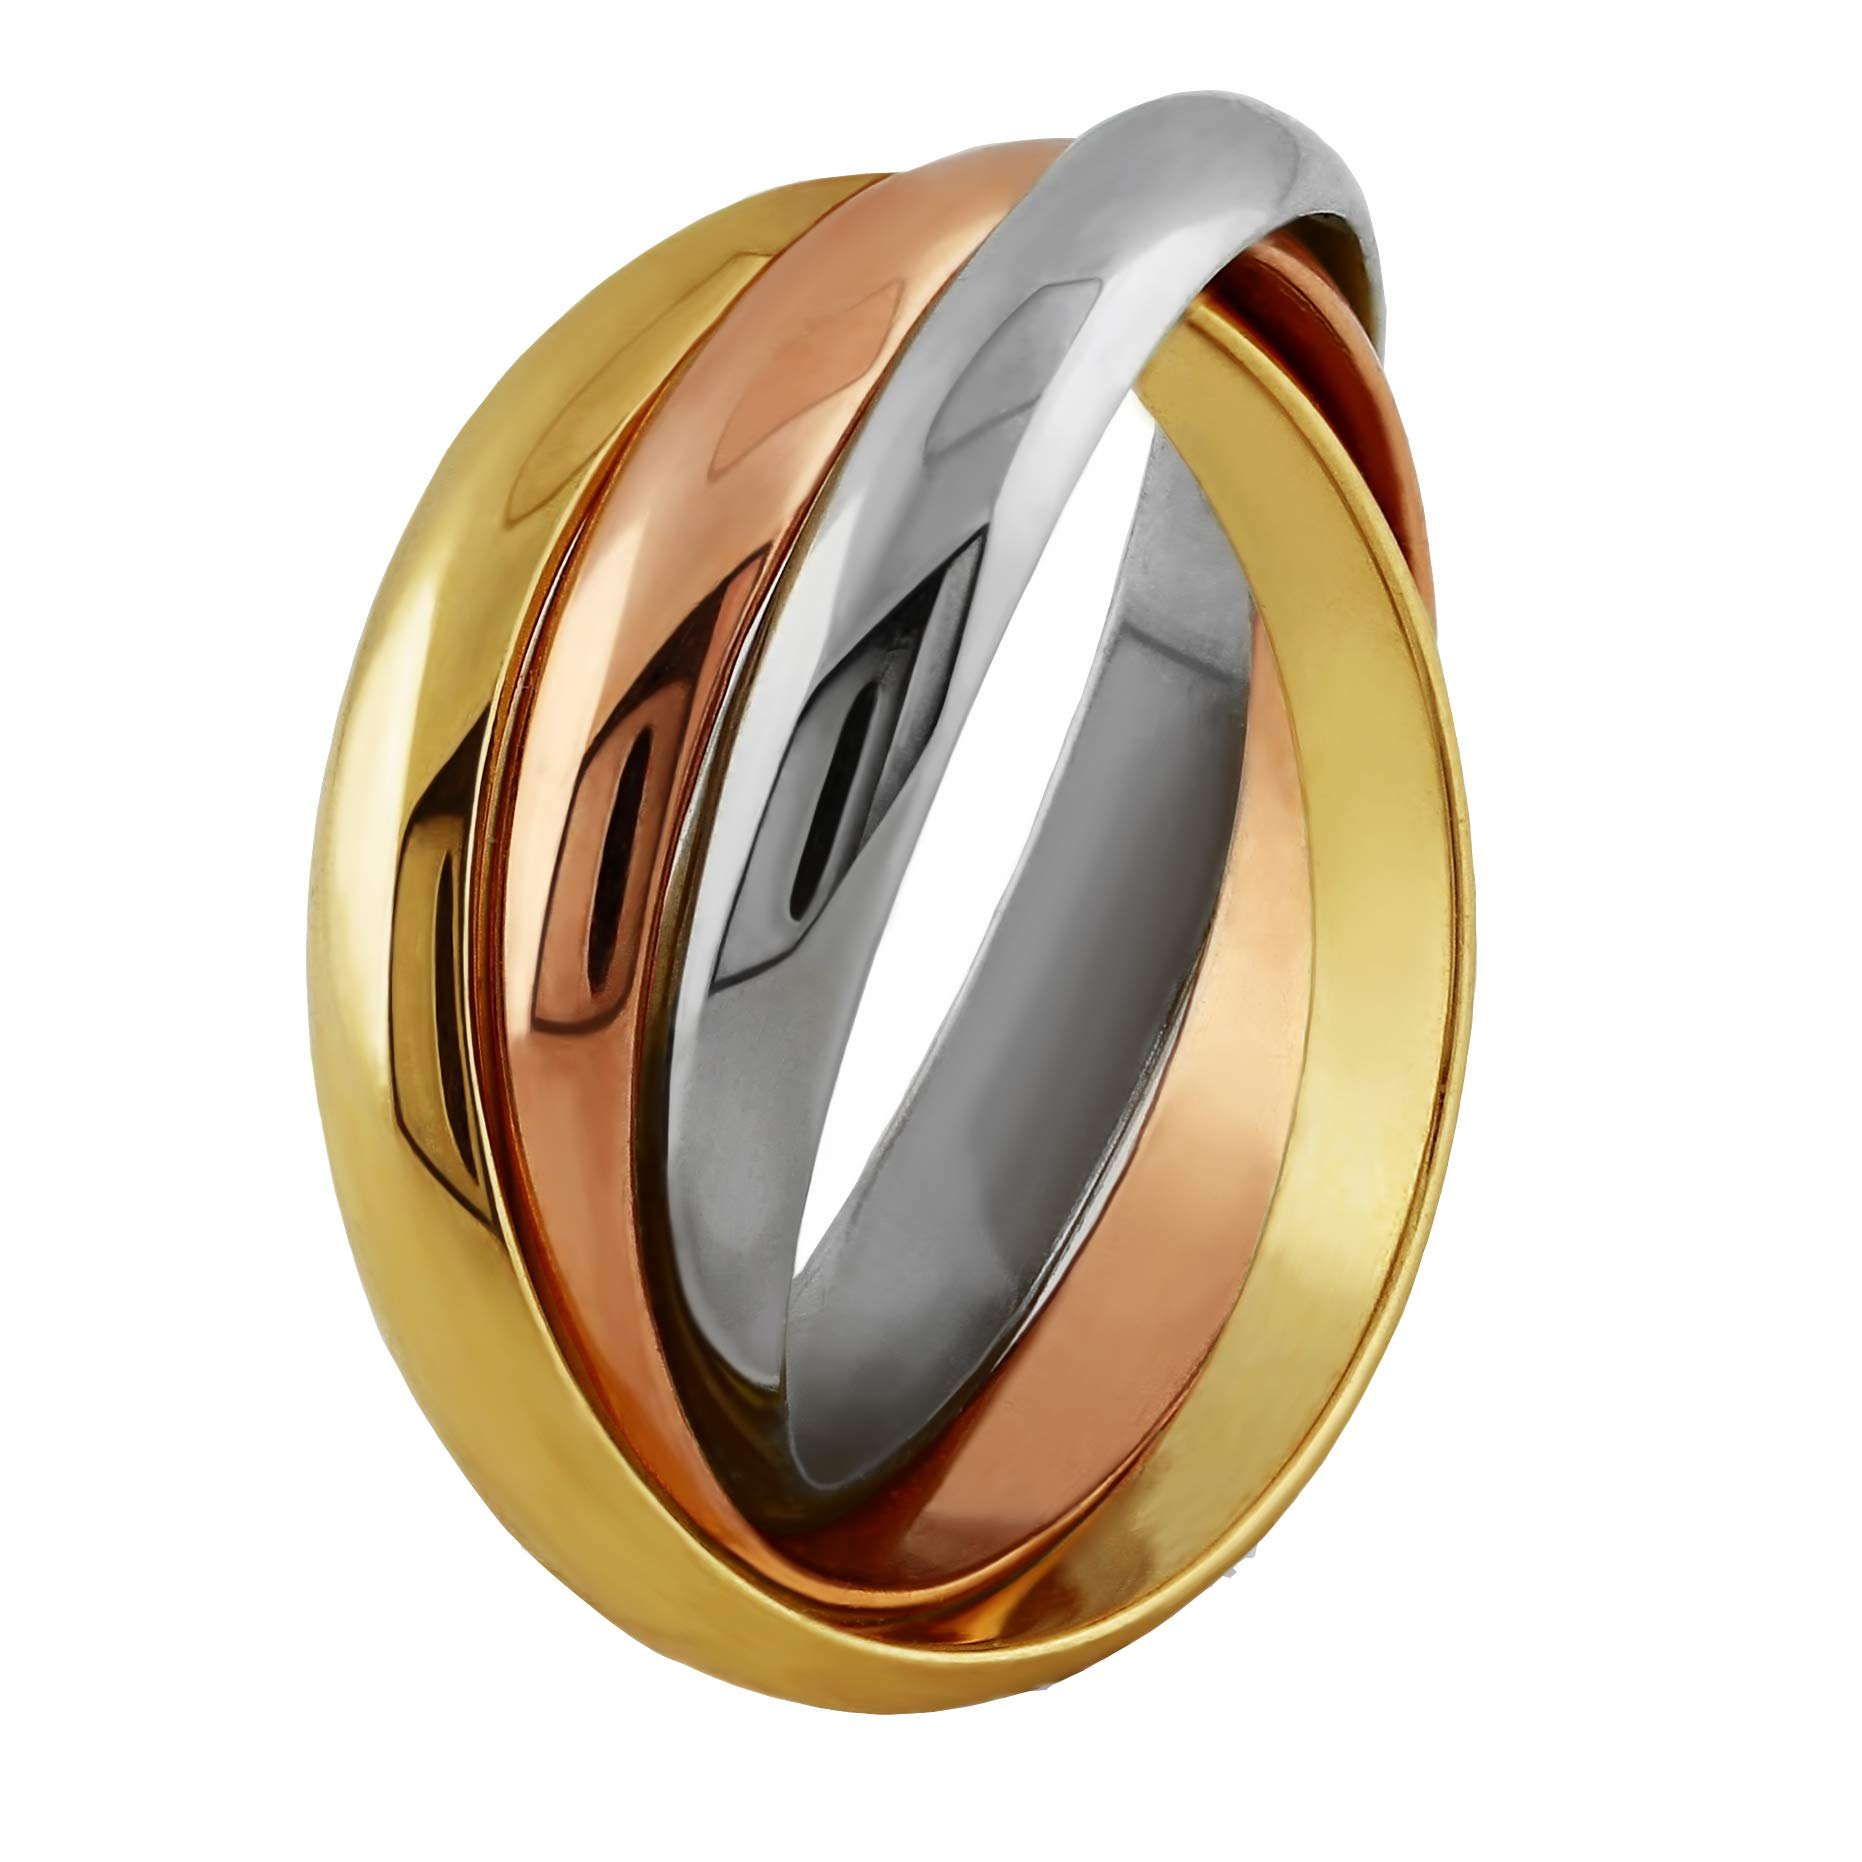 UCTUK 14K Solid Gold Tricolor Rolling Ring - 3B3C (8)